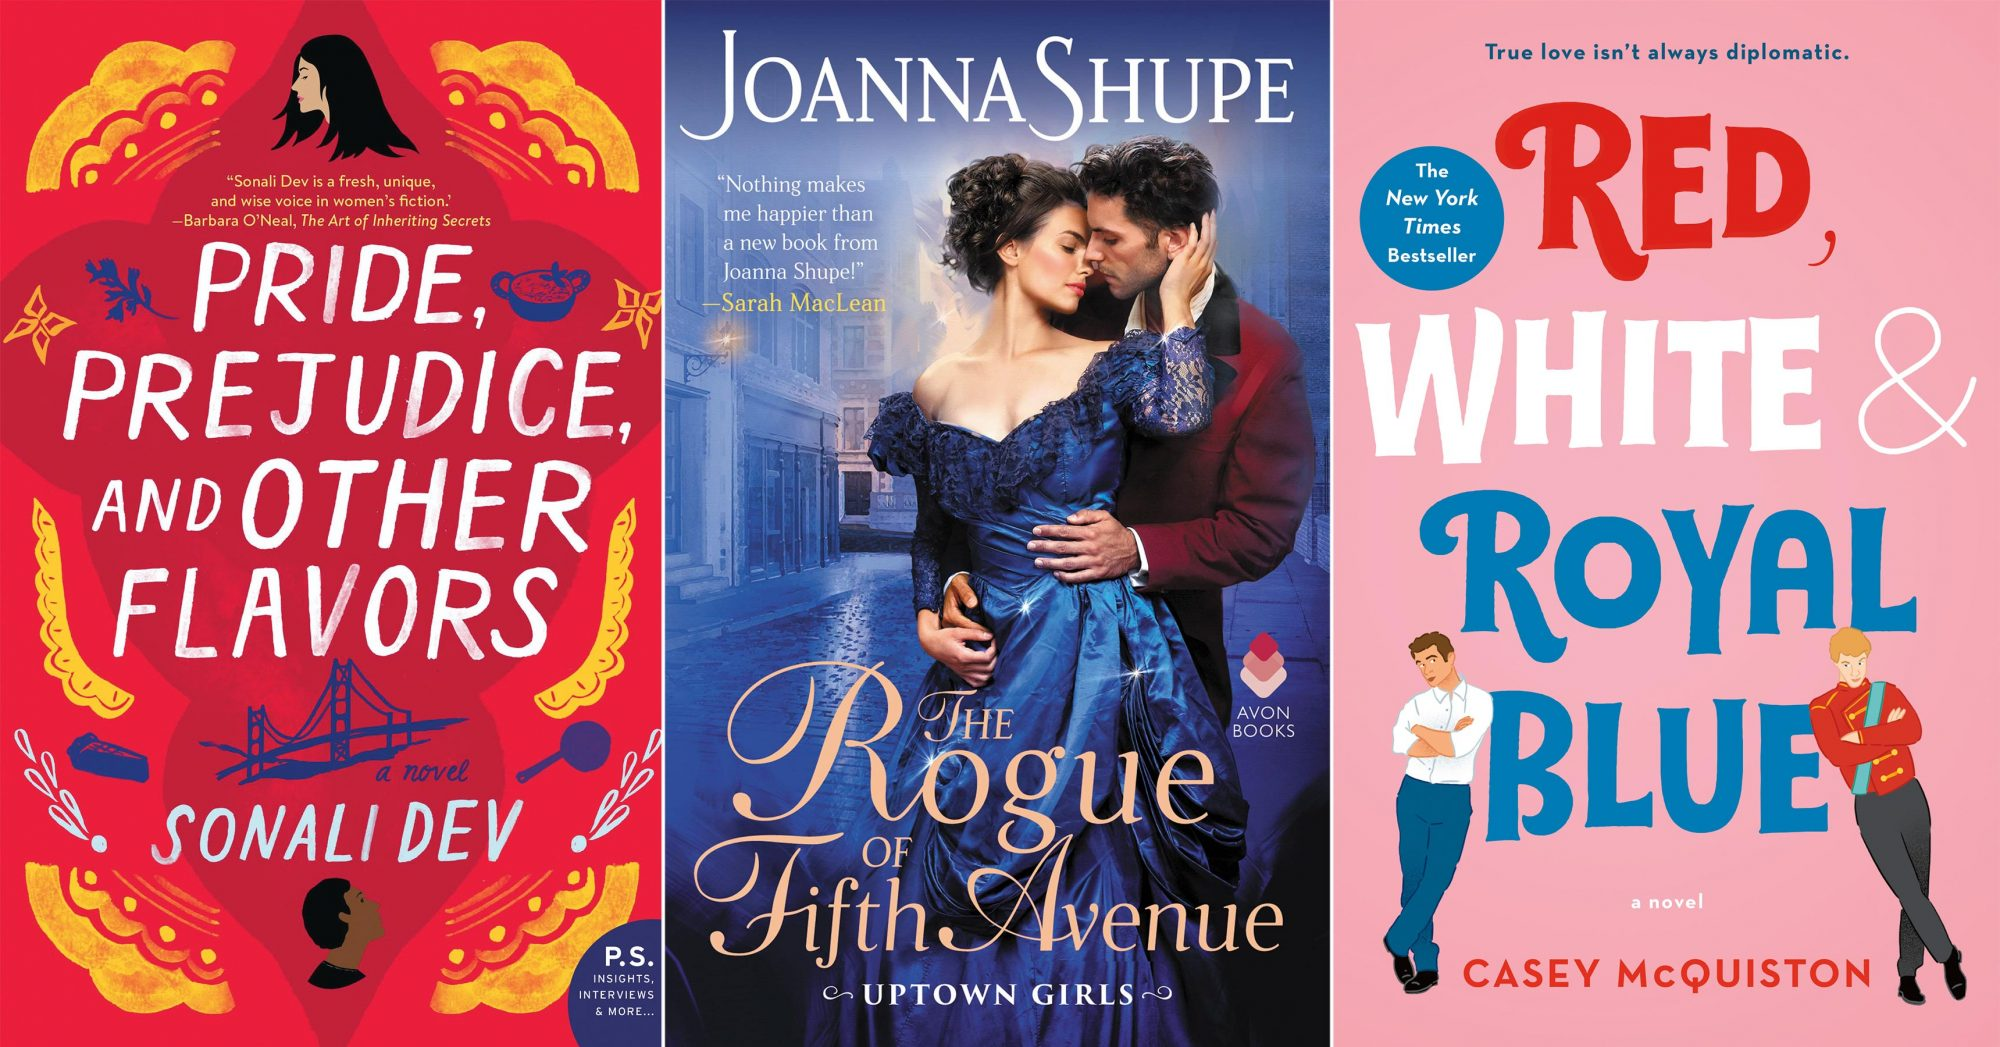 May Romance Column Pride Prejudice and Other Flavors by Sonali Dev CR: HarperCollins The Rogue of Fifth Avenue (Uptown Girls, #1) by Joanna Shupe CR: Avon Red, White & Royal Blue: A Novel by Casey McQuiston CR: St. Martin's Griffin